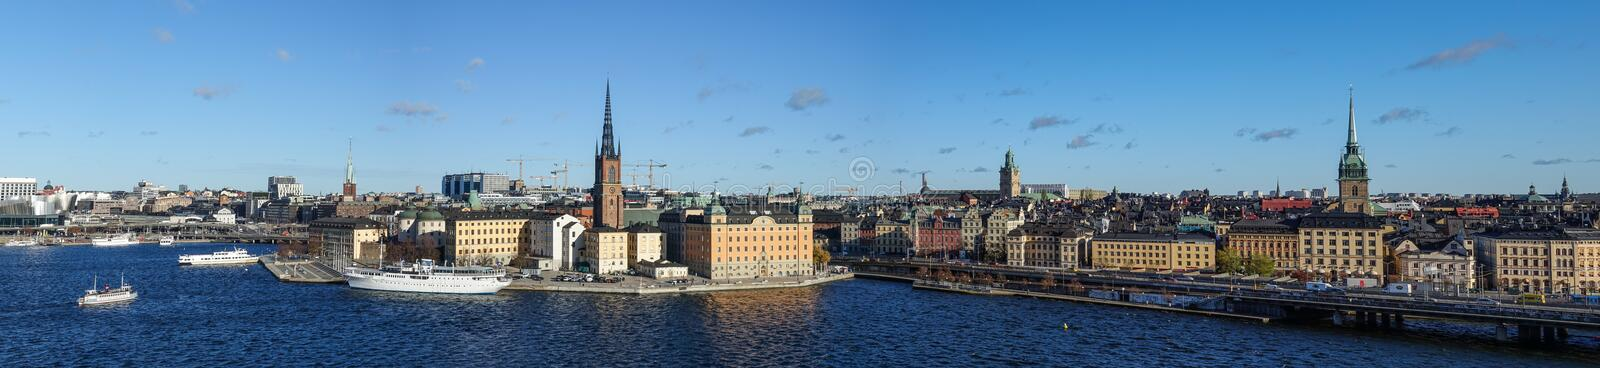 Panorama of Riddarholmen and the old town of Stockholm, Sweden. royalty free stock photo